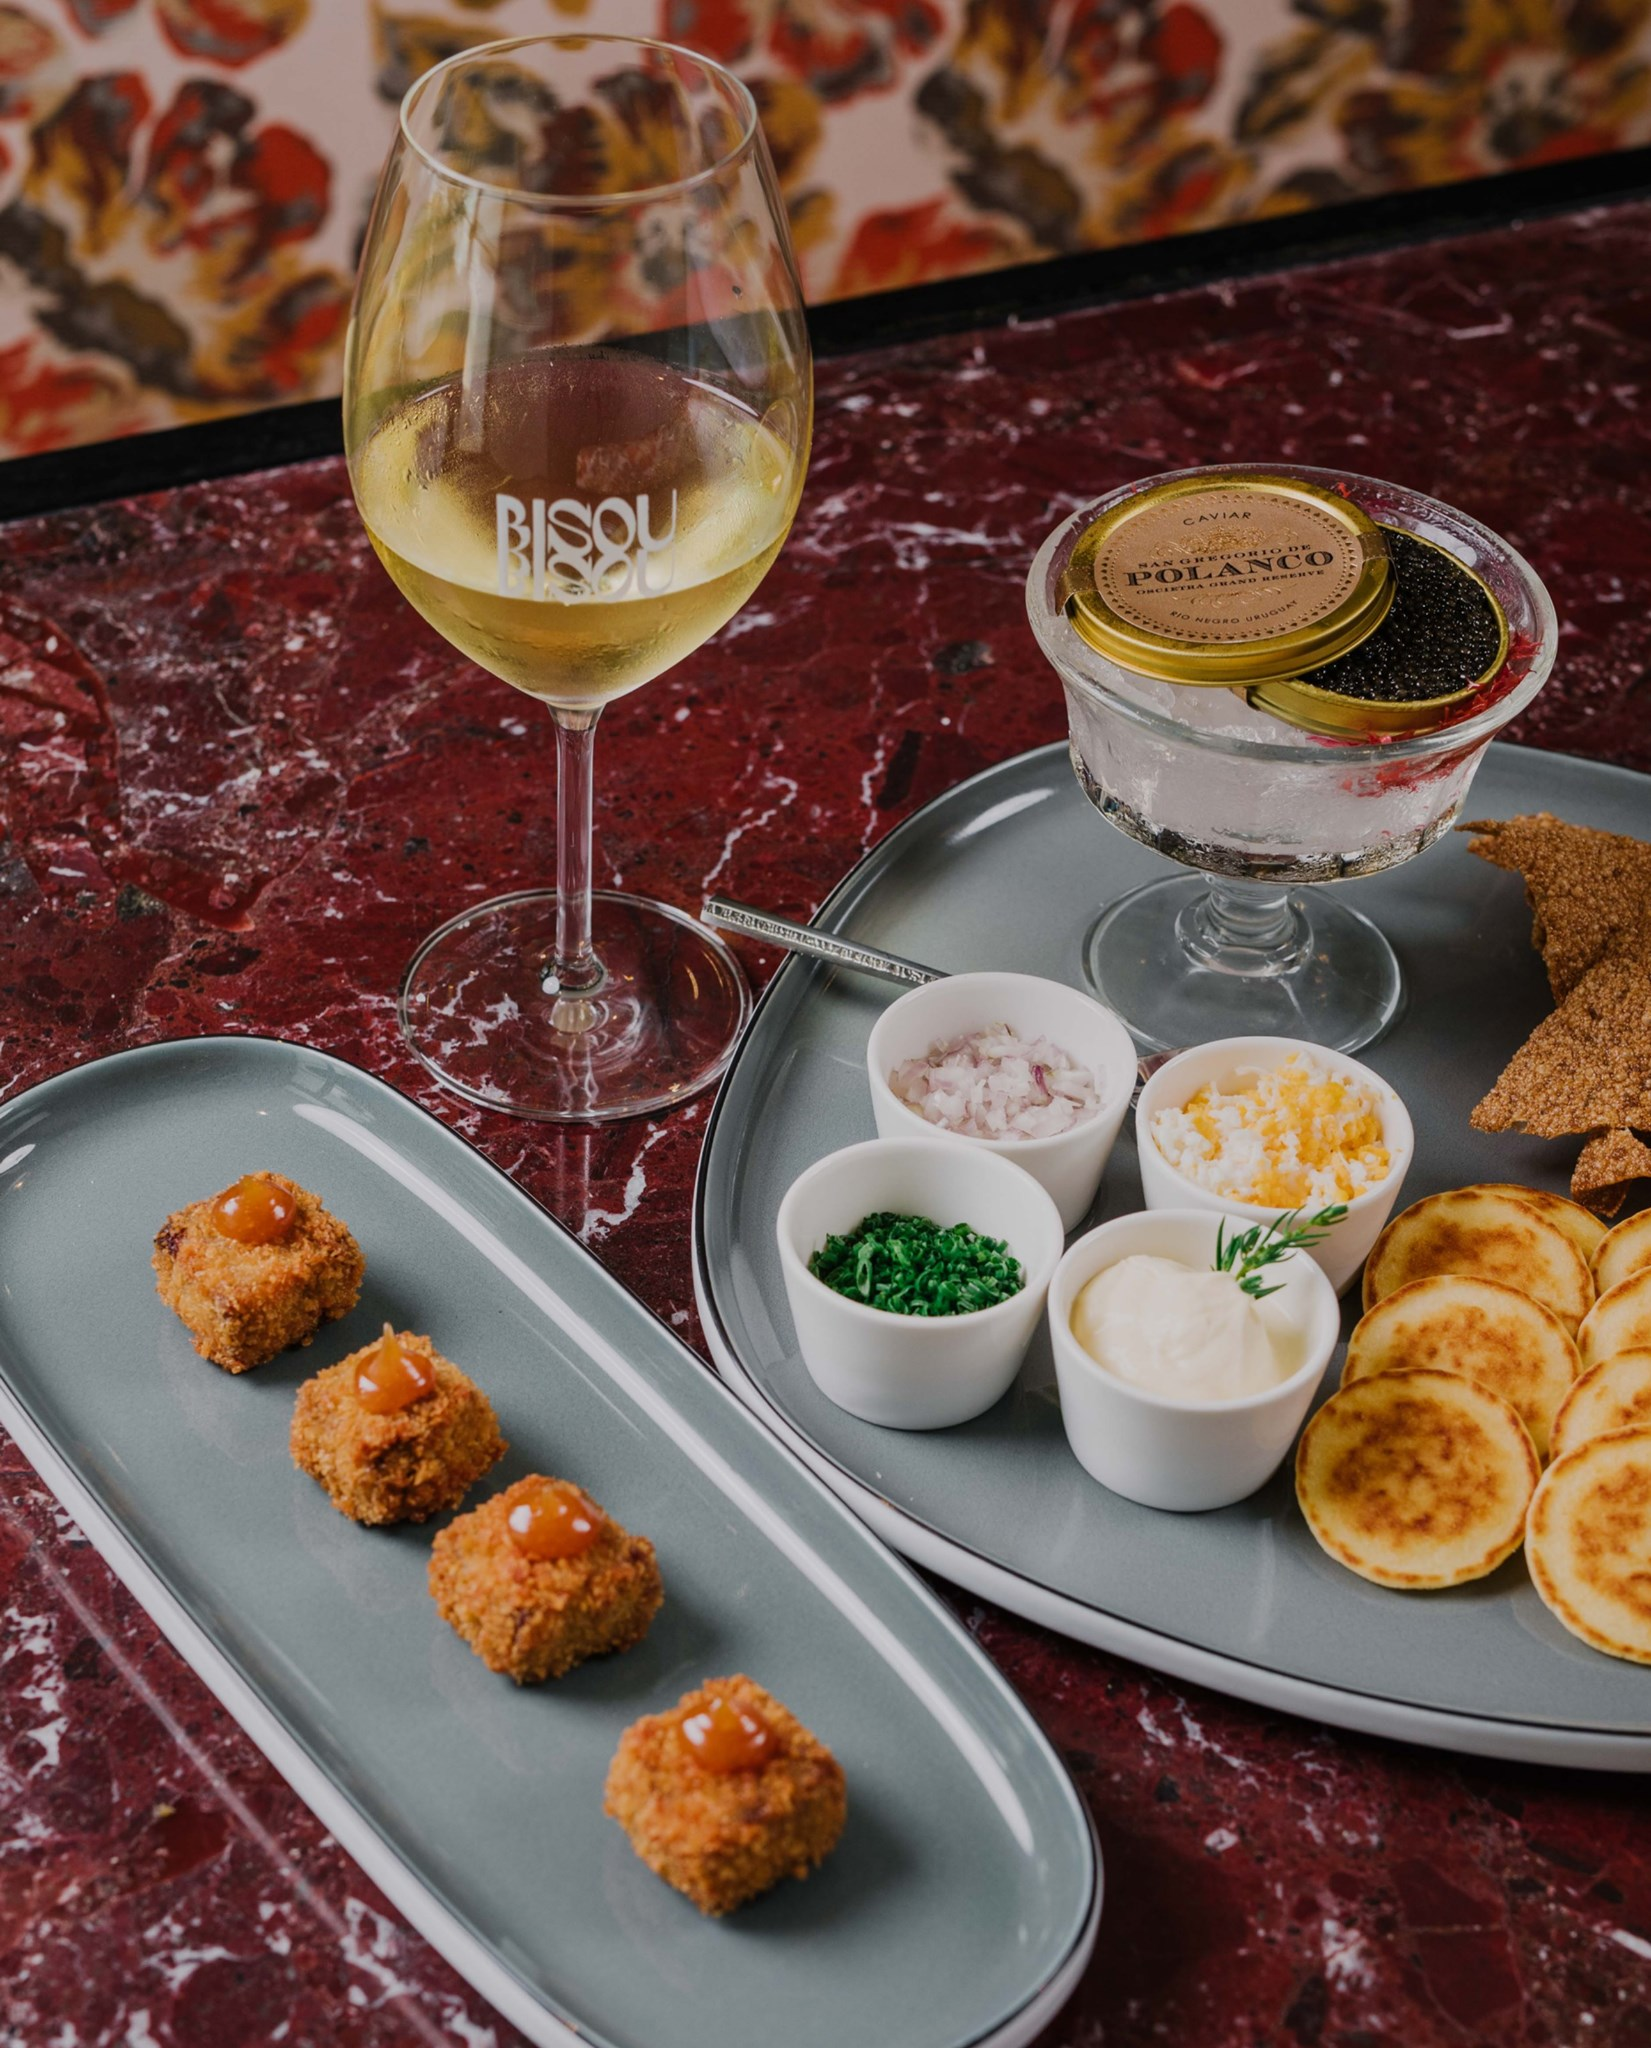 a plate of caviar and blinis with a glass of wine